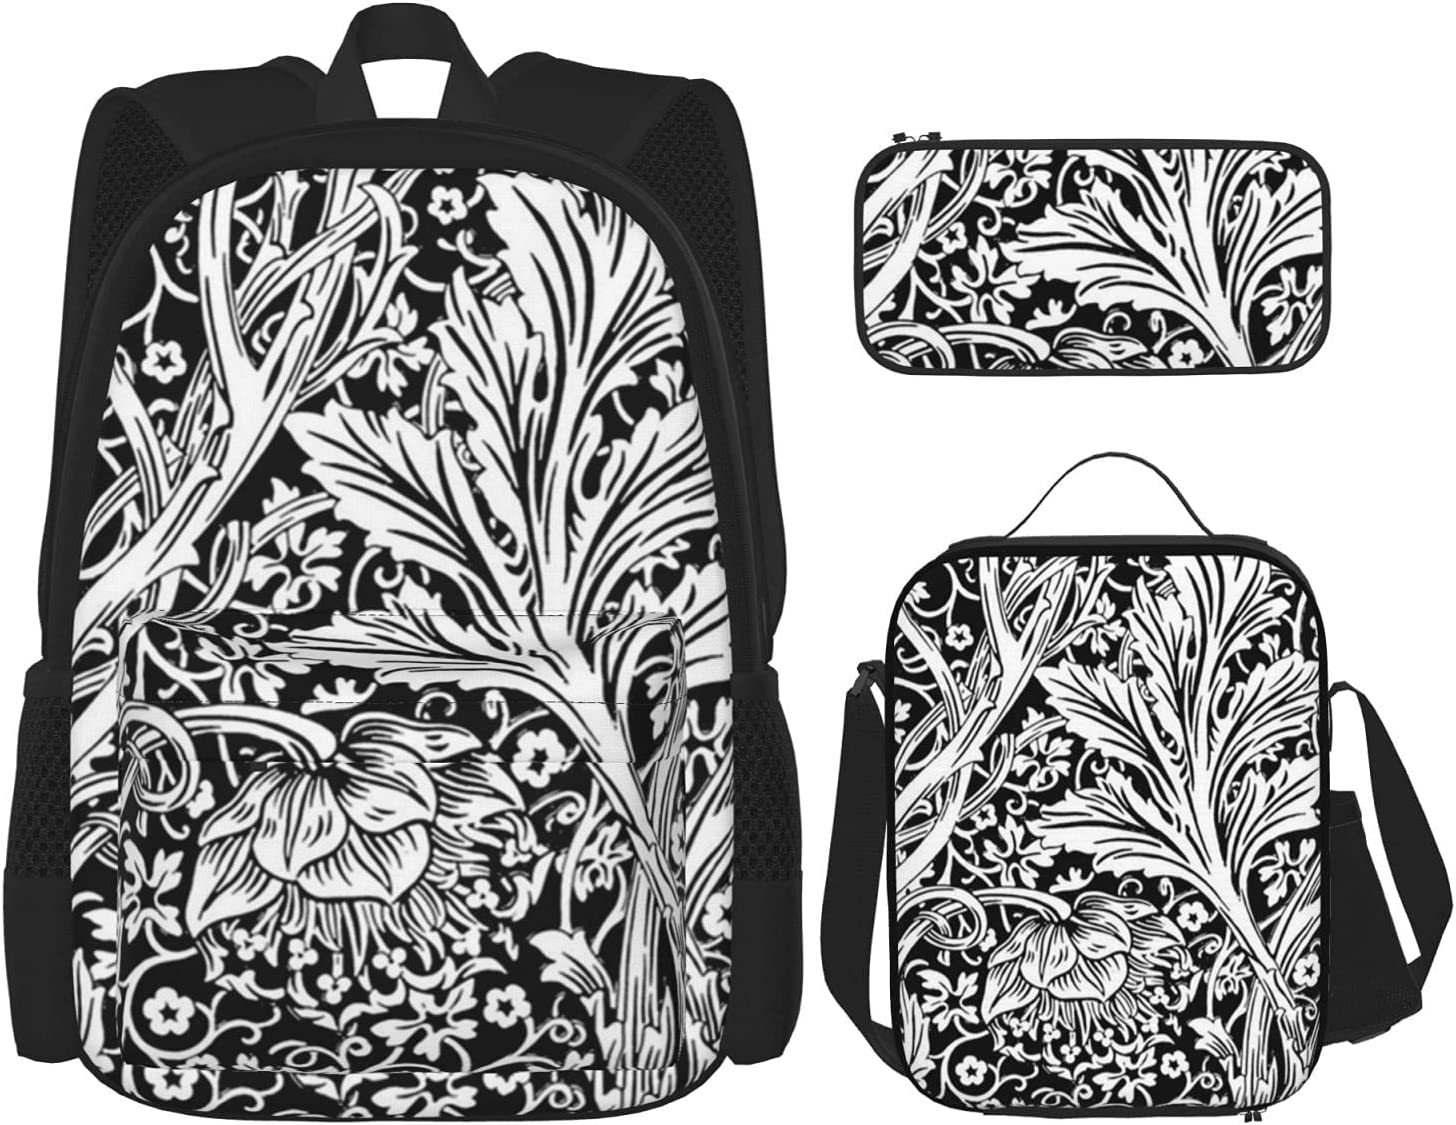 Max 89% OFF Backpack Bags Black White 25% OFF Bag with 3 Lunch Pencil Pouch Case